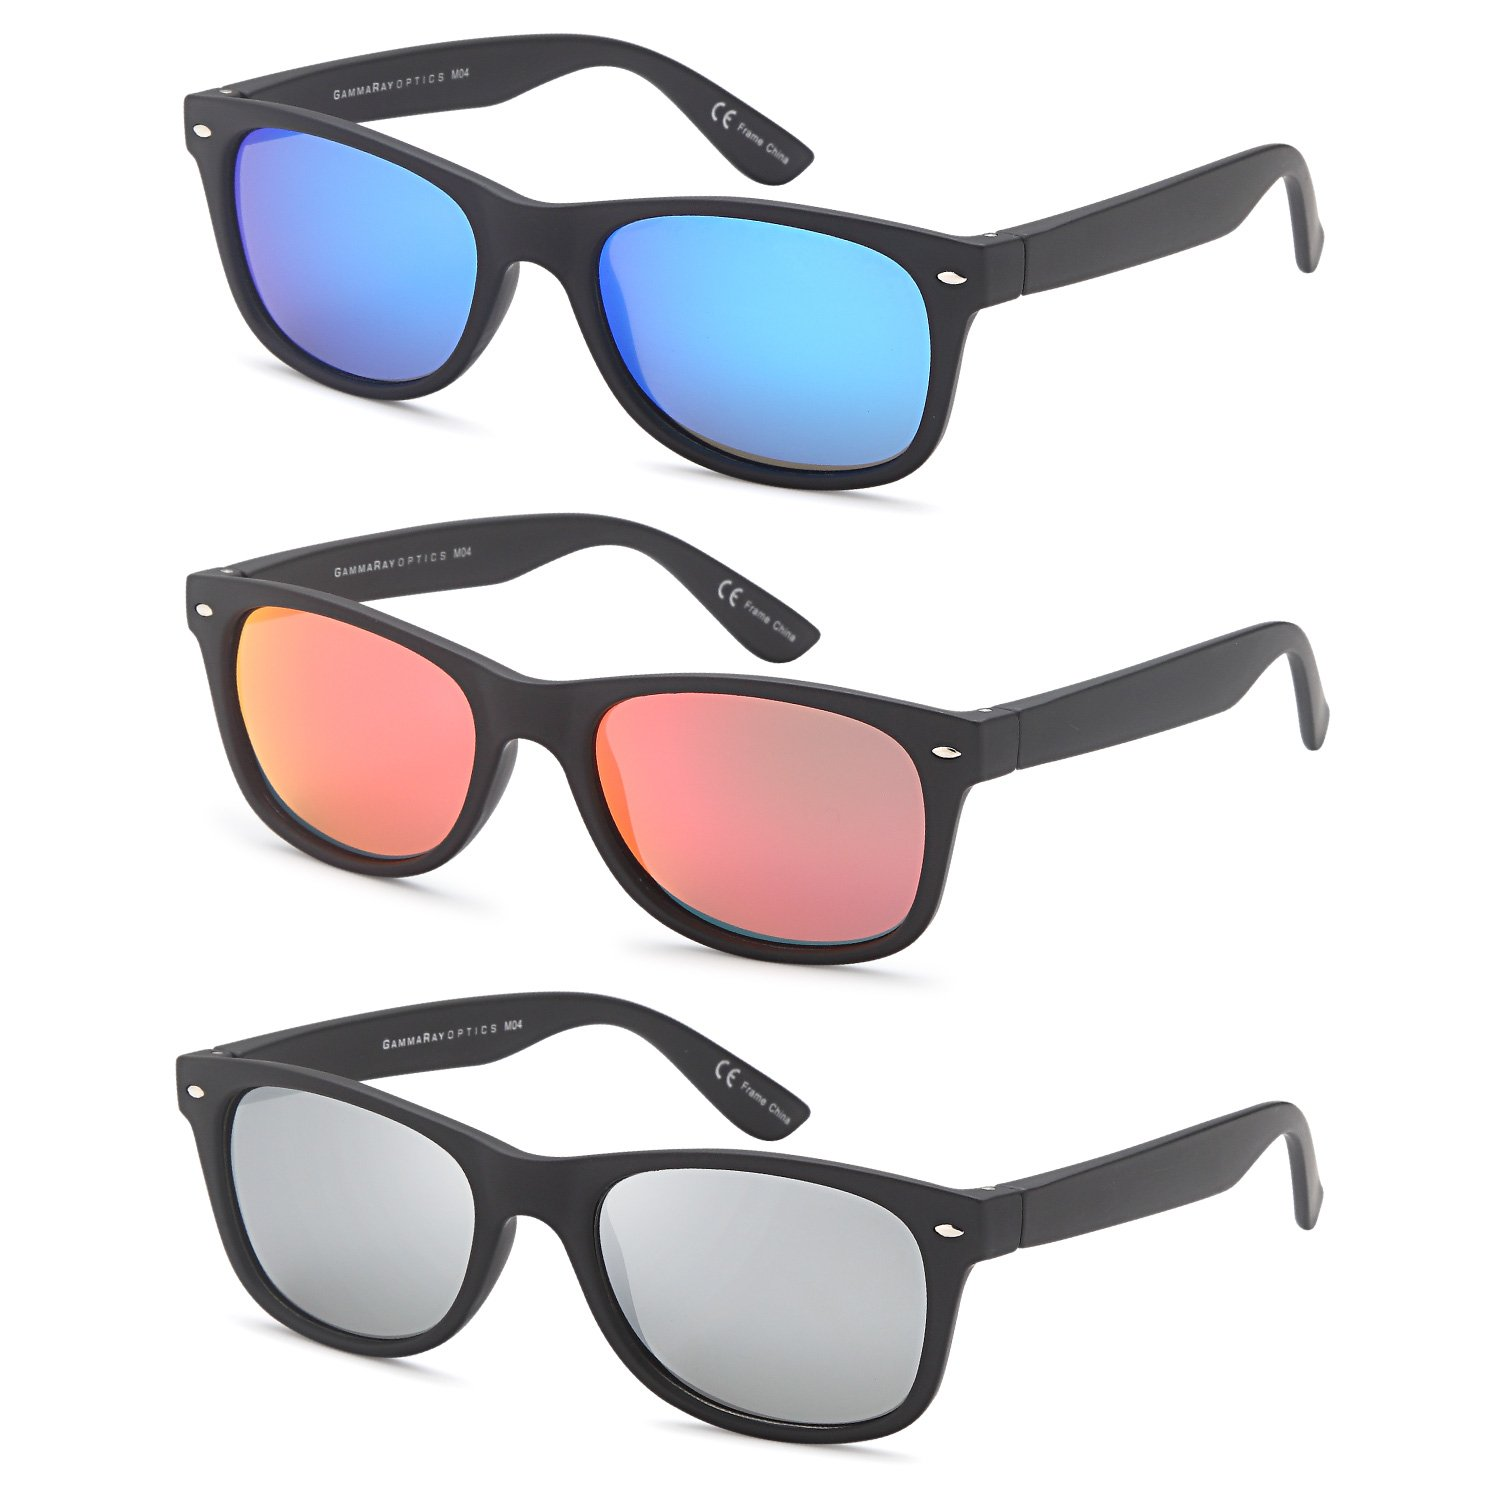 8934afe8d66e Amazon.com: Polarized Sunglasses Men and Women 3 Pack (3 Pairs - 55 Eye  Size Matte Black Frame Mixed Mirror Lens Colors, 55): Sports & Outdoors